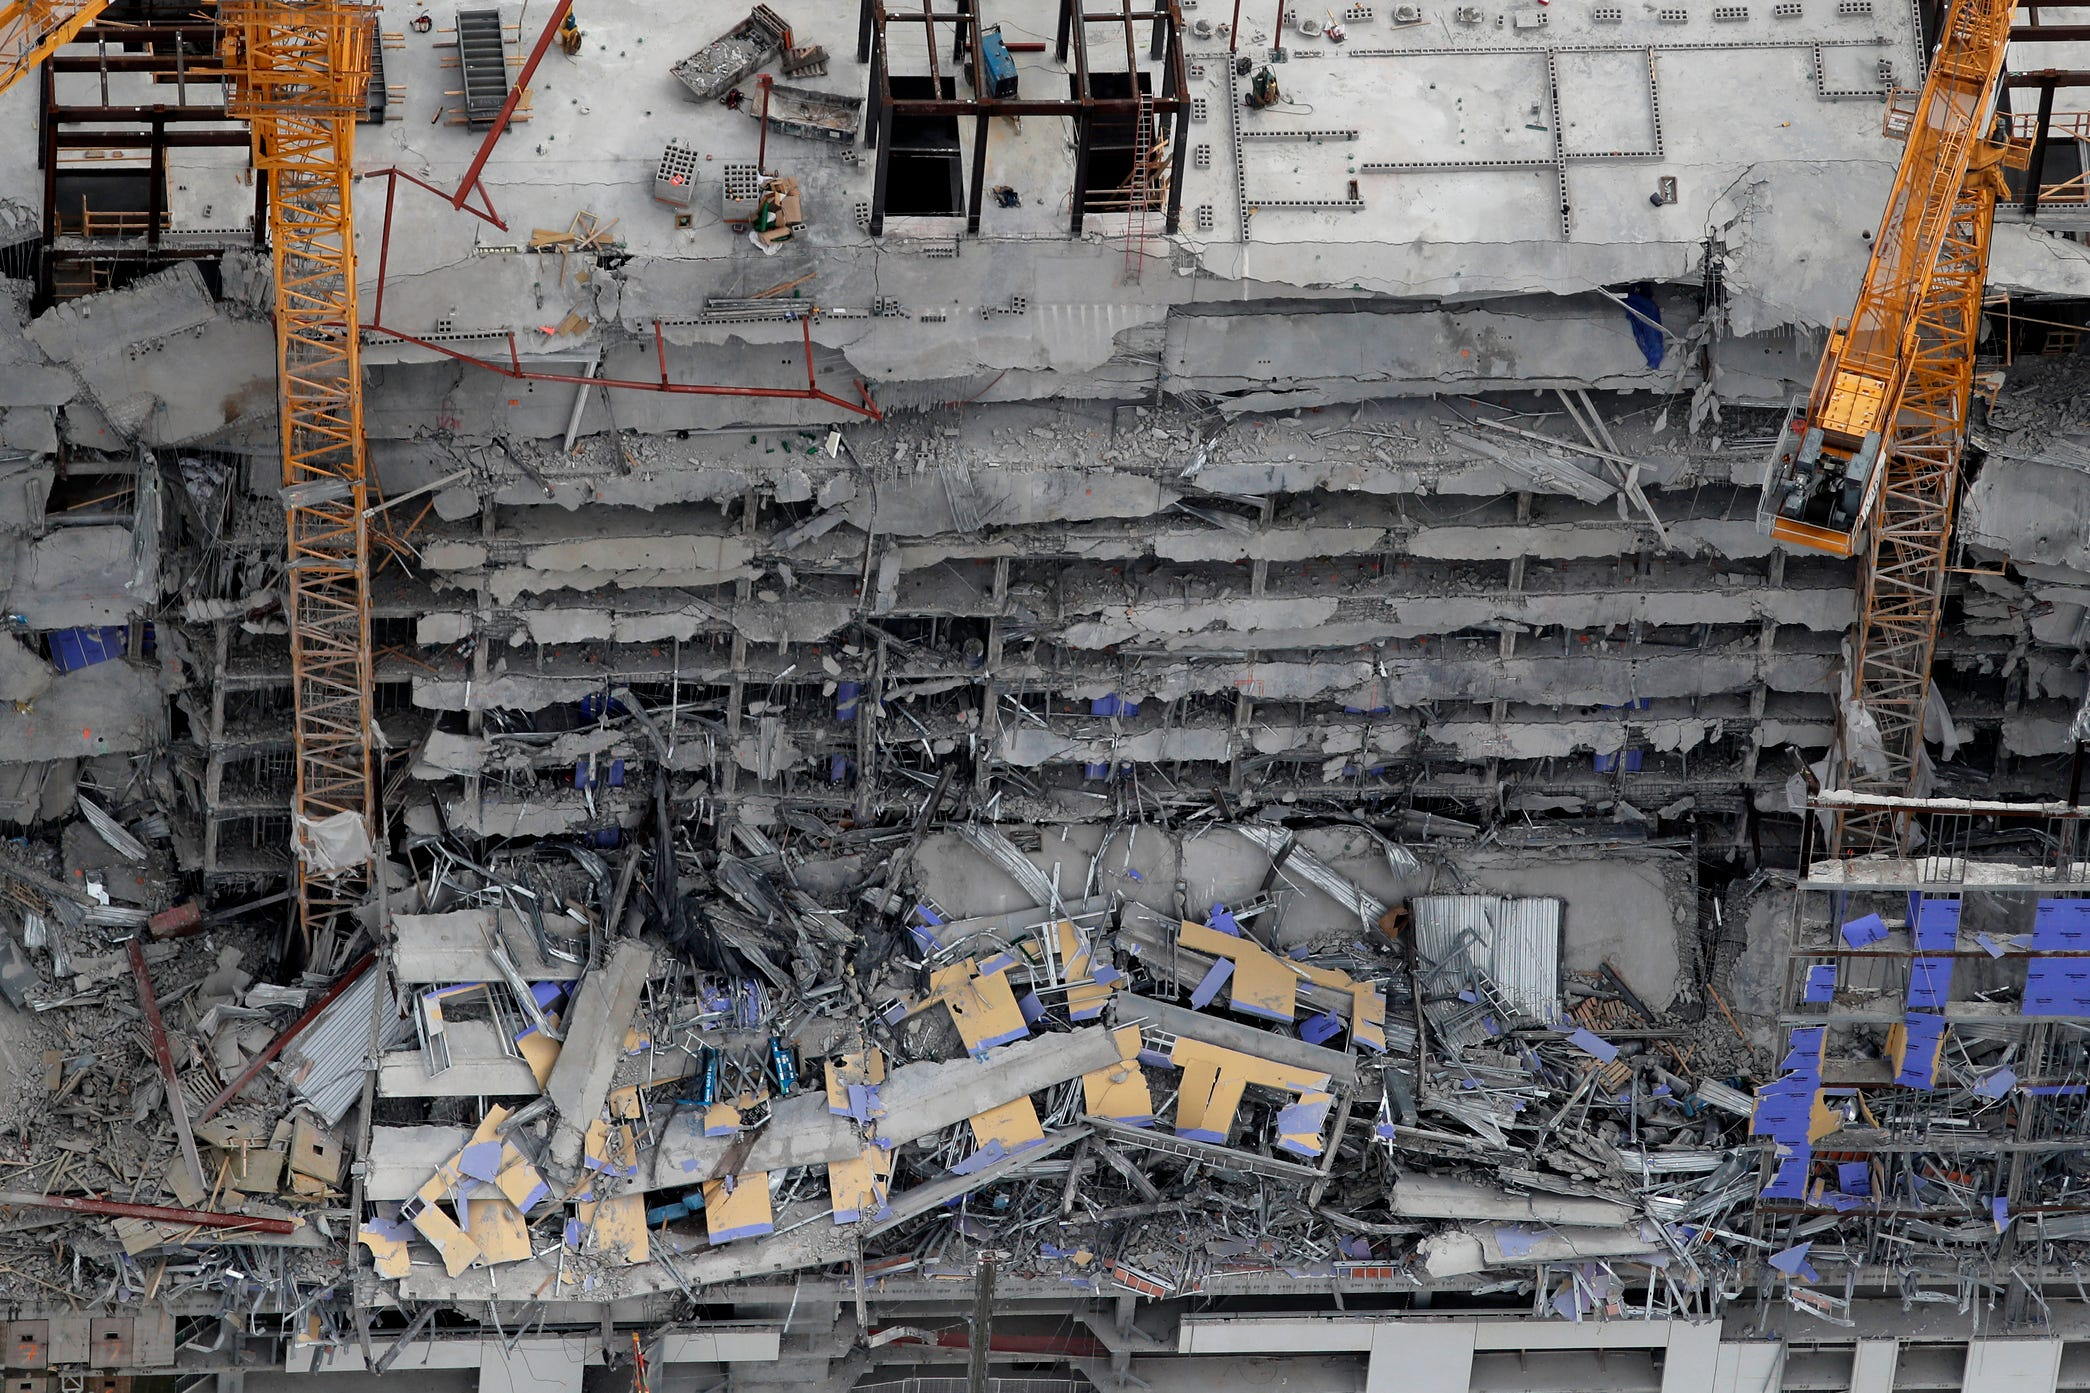 After October's Hard Rock Hotel collapse in New Orleans, lawsuits mount